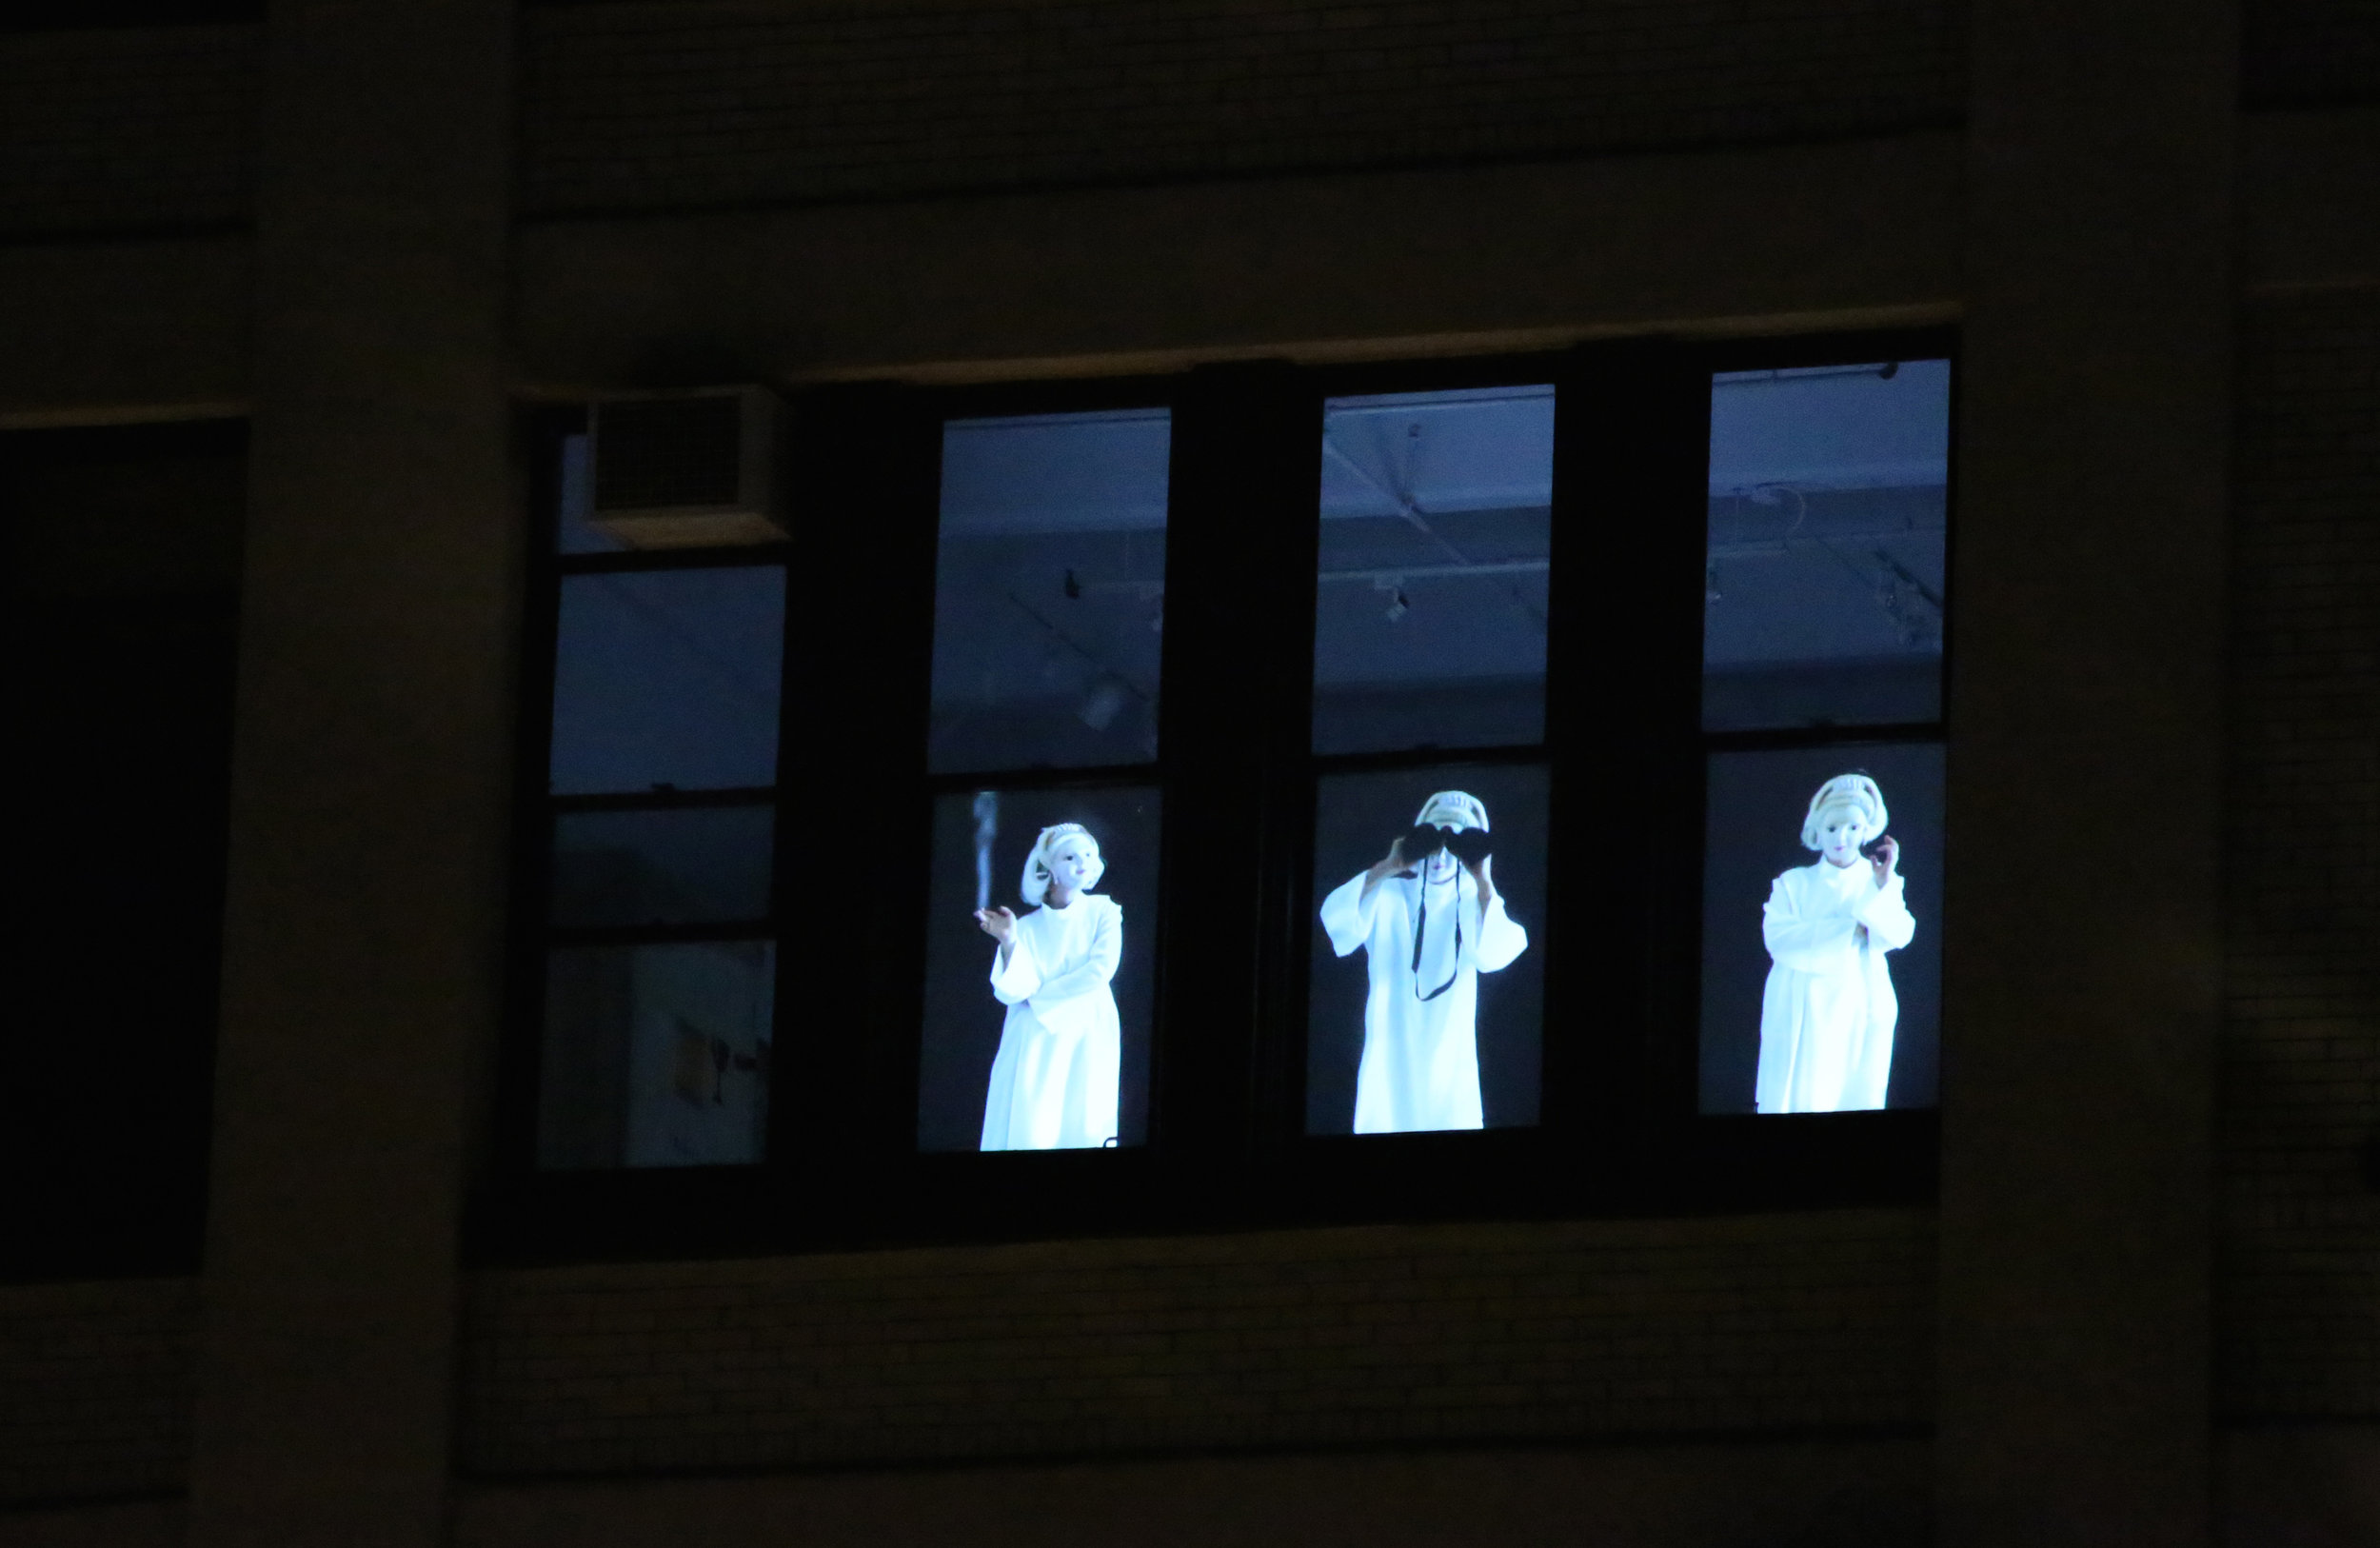 C.R.E.E.P.S. , 2014  Video projection installation  Run time: 6 minutes, 54 seconds